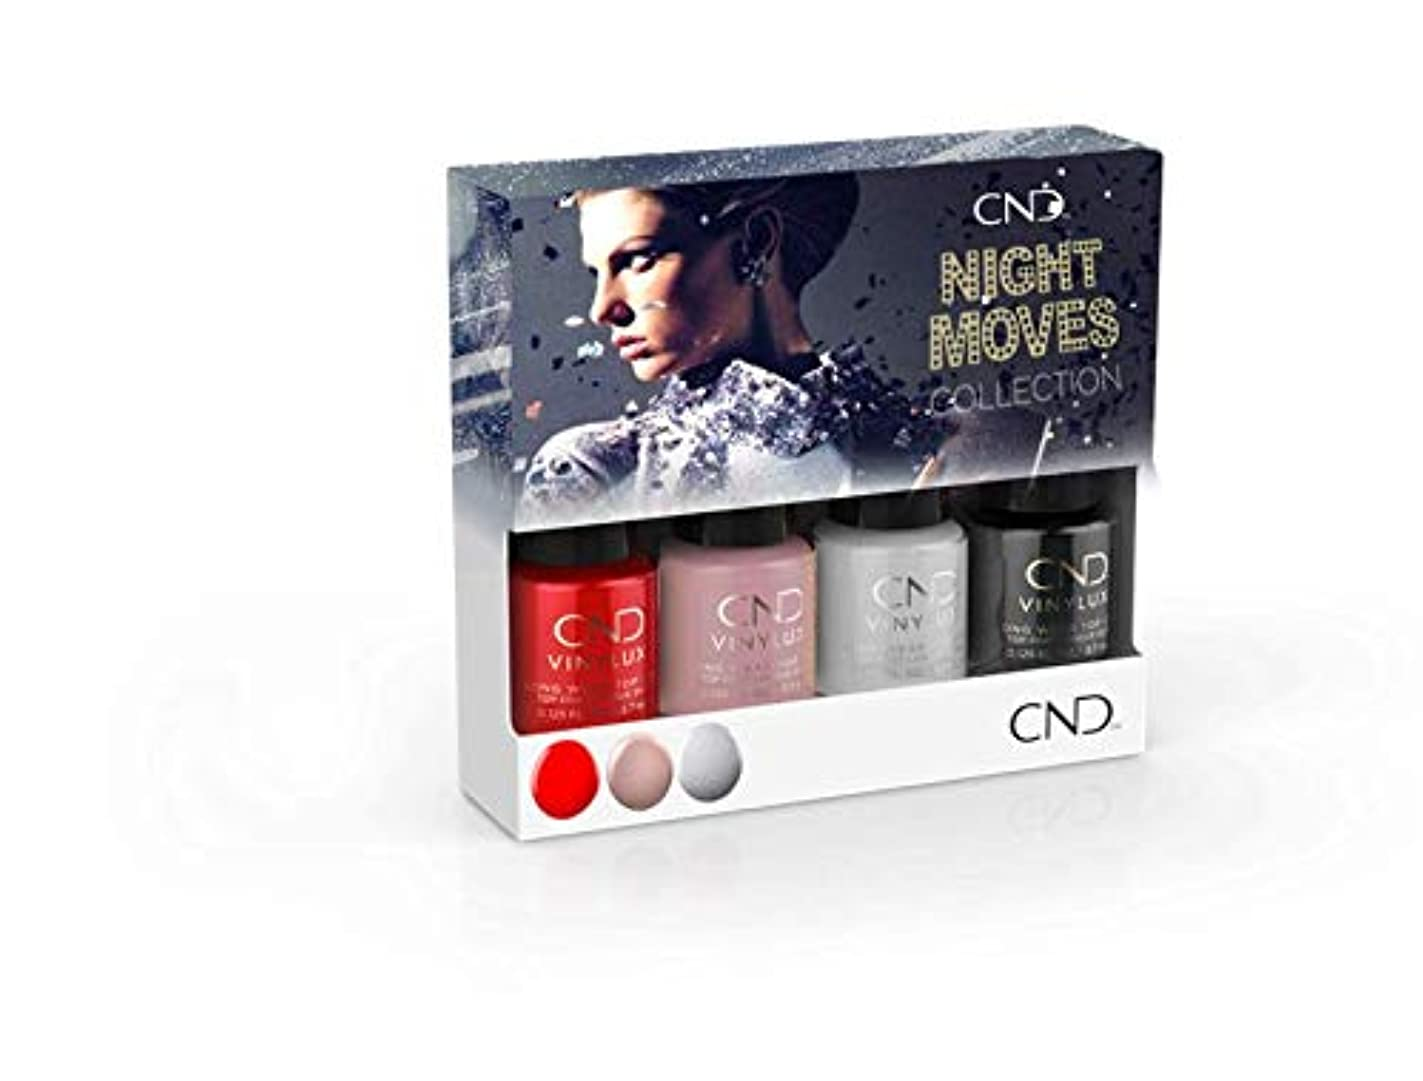 のど幻滅する批判的にCND Vinylux - Night Moves The Collection - Mini 4pk - 3.7 mL / 0.125 oz